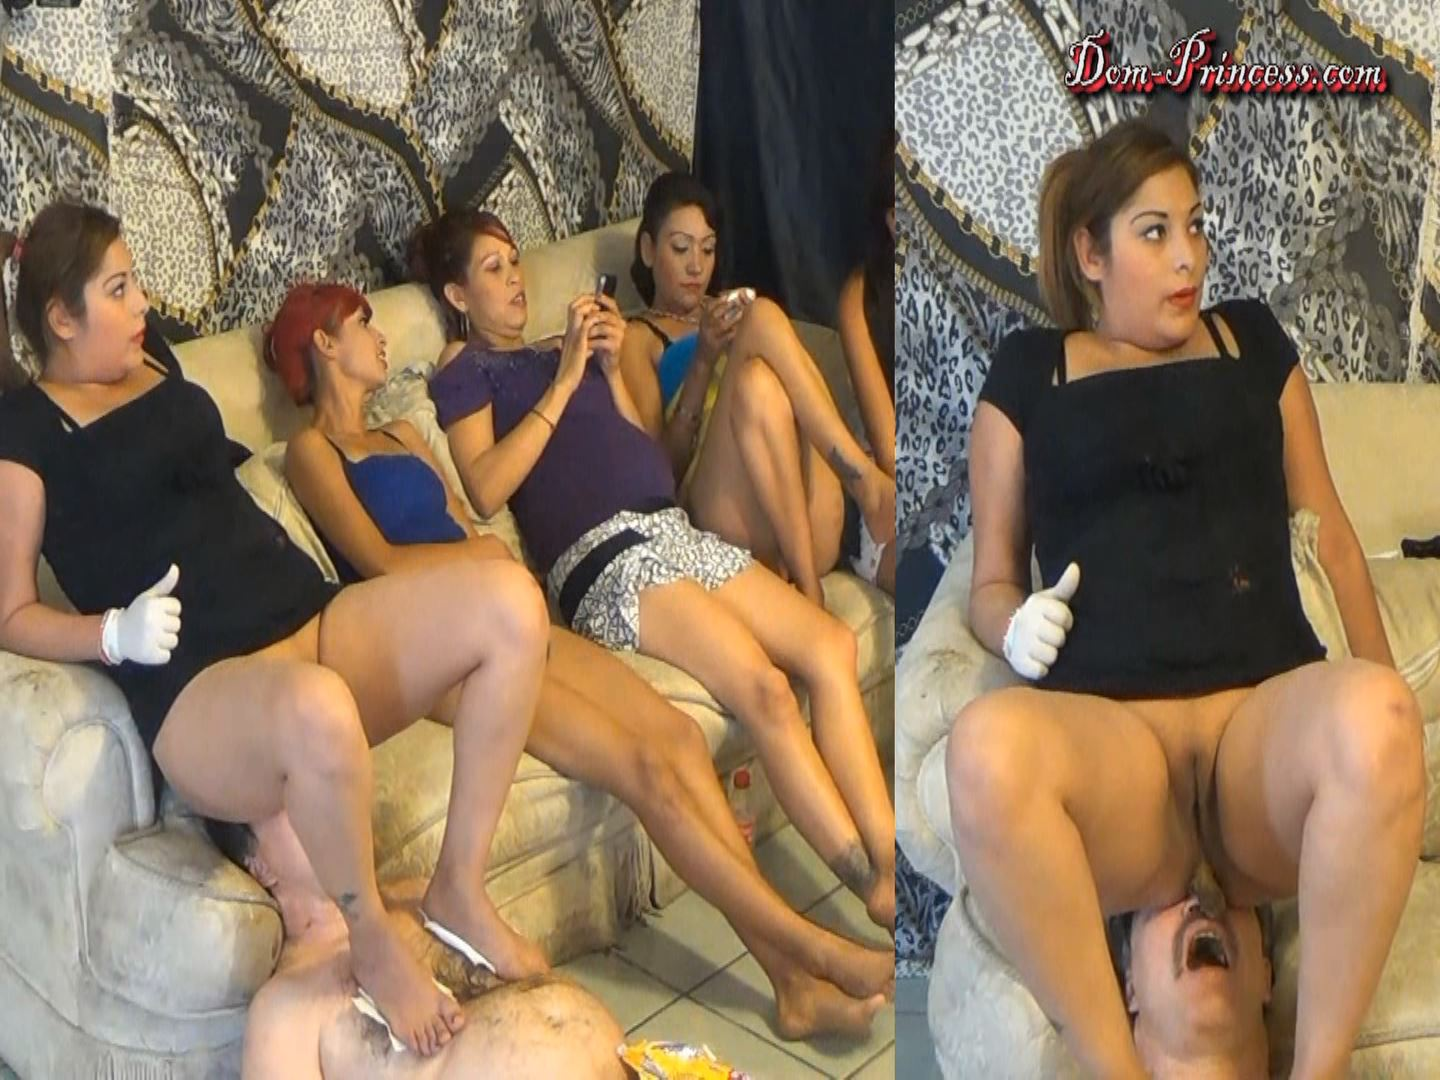 [SCAT-PRINCESS] On Couch Toilet Session Part 5 Ana [FULL HD][1080p][WMV]